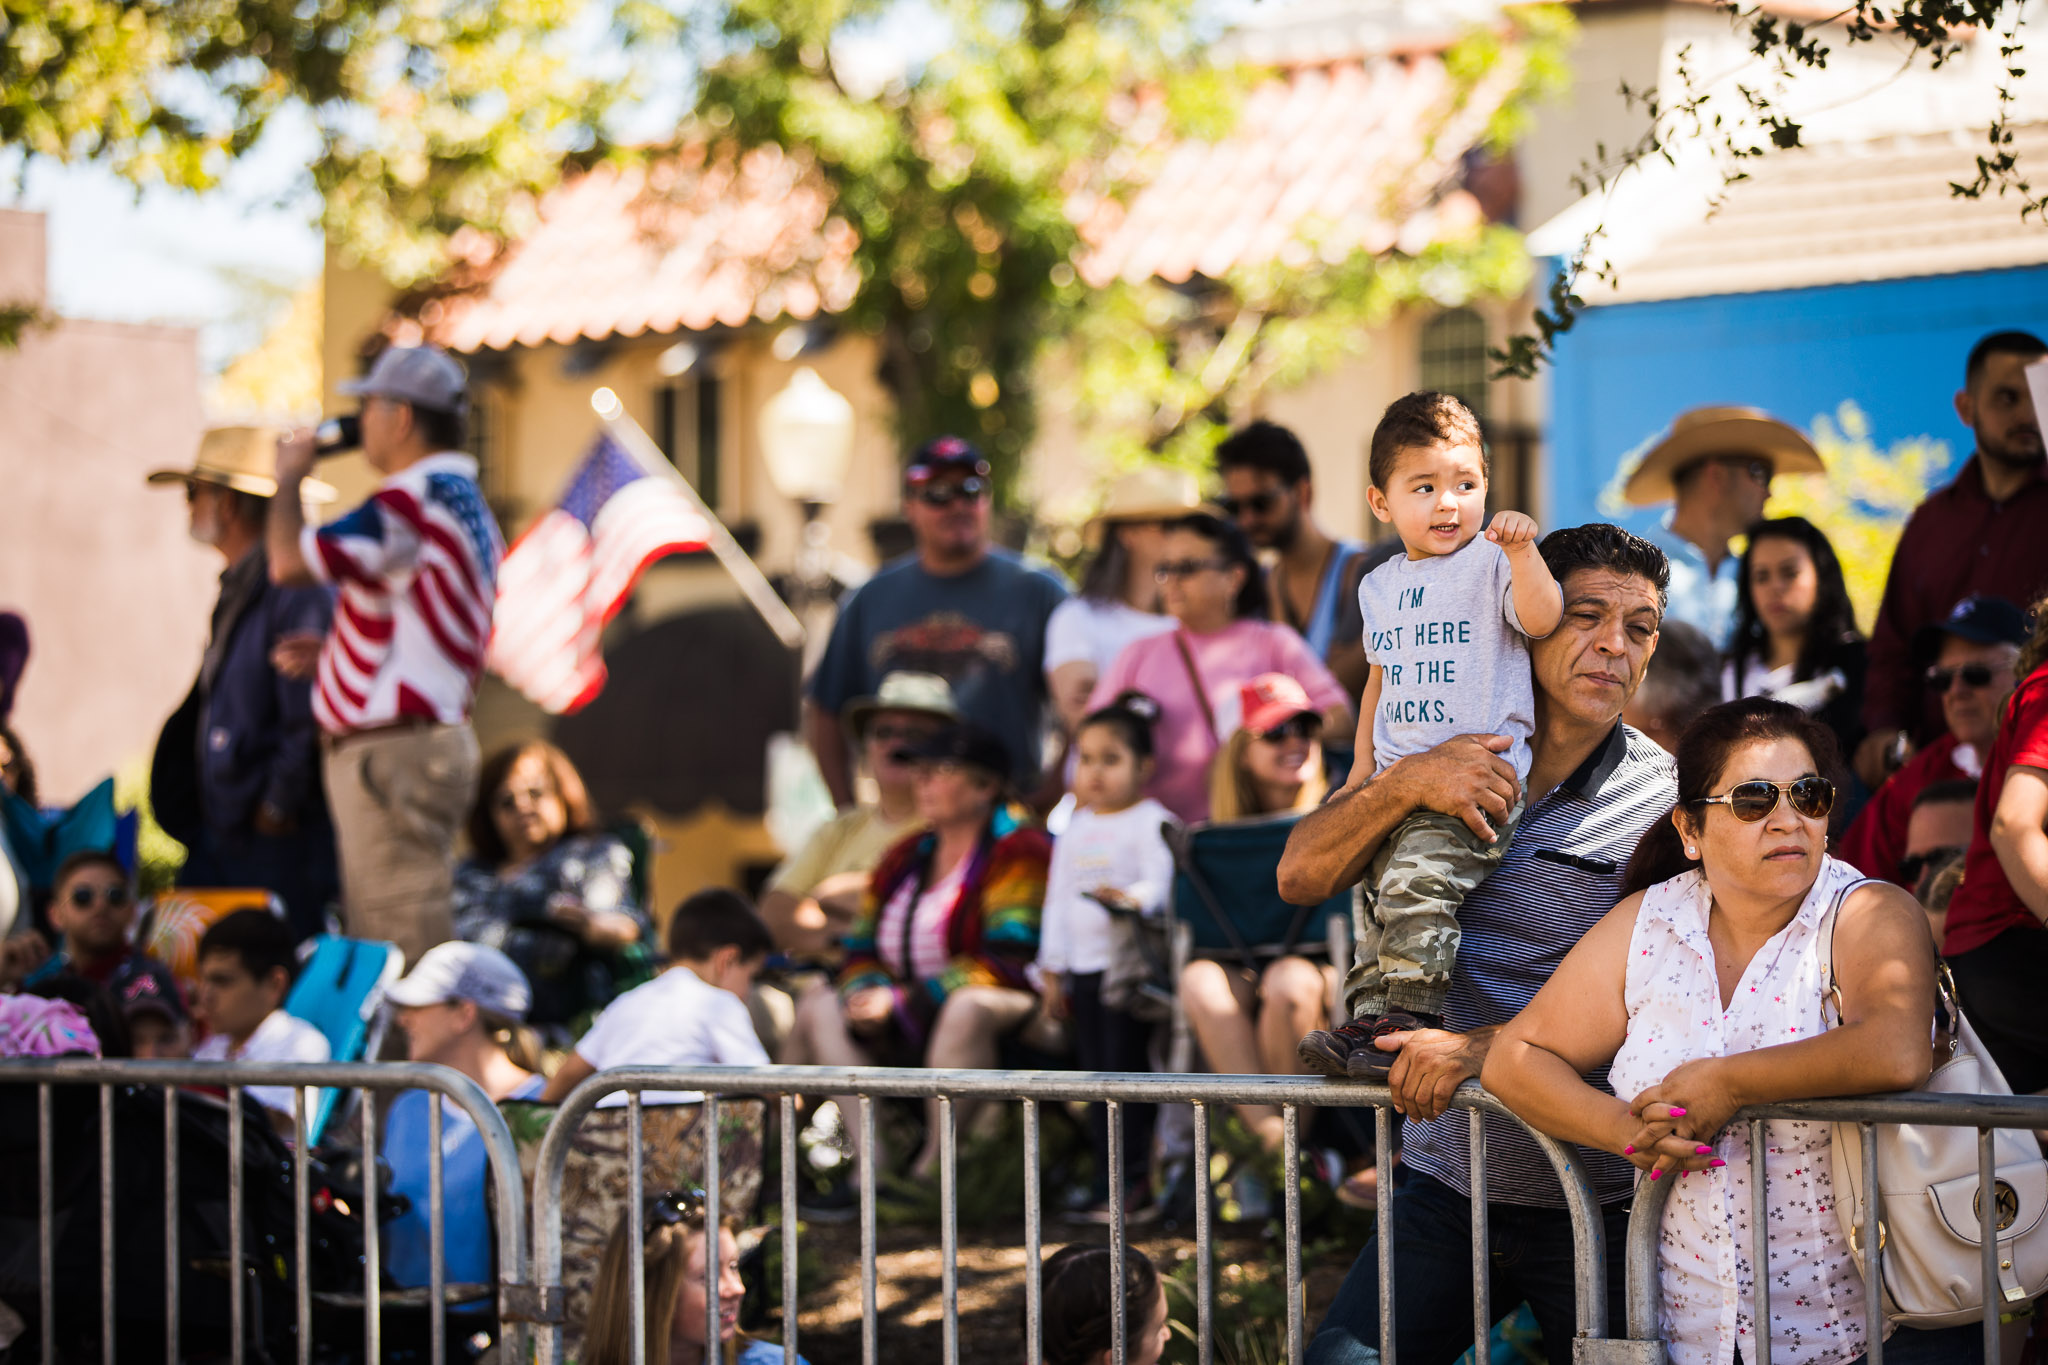 Archer_Inspired_Photography_Morgan_Hill_California_4th_of_july_parade-173.jpg